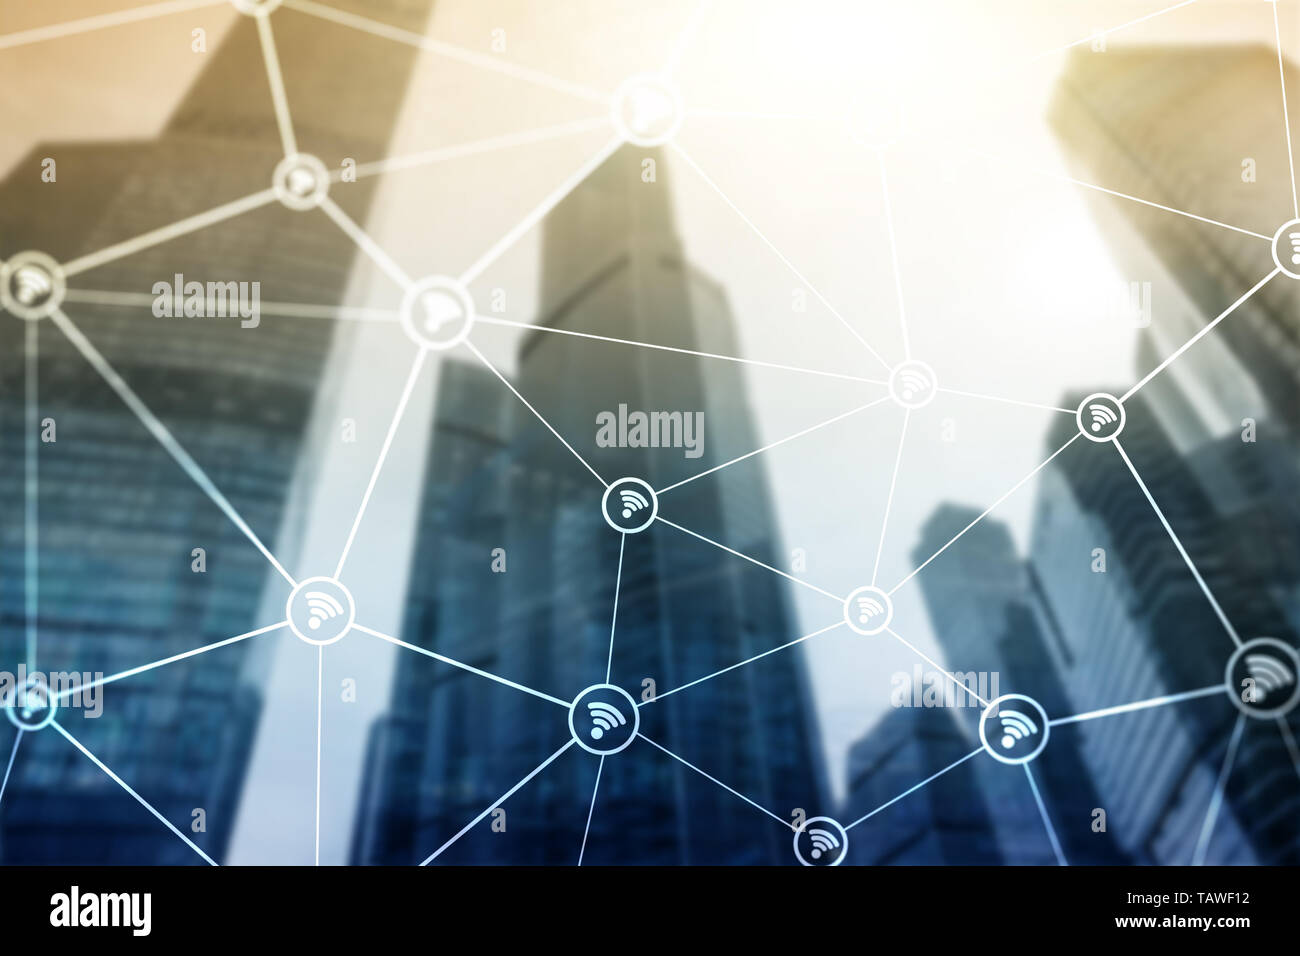 Wifi network on blurred business center background. - Stock Image